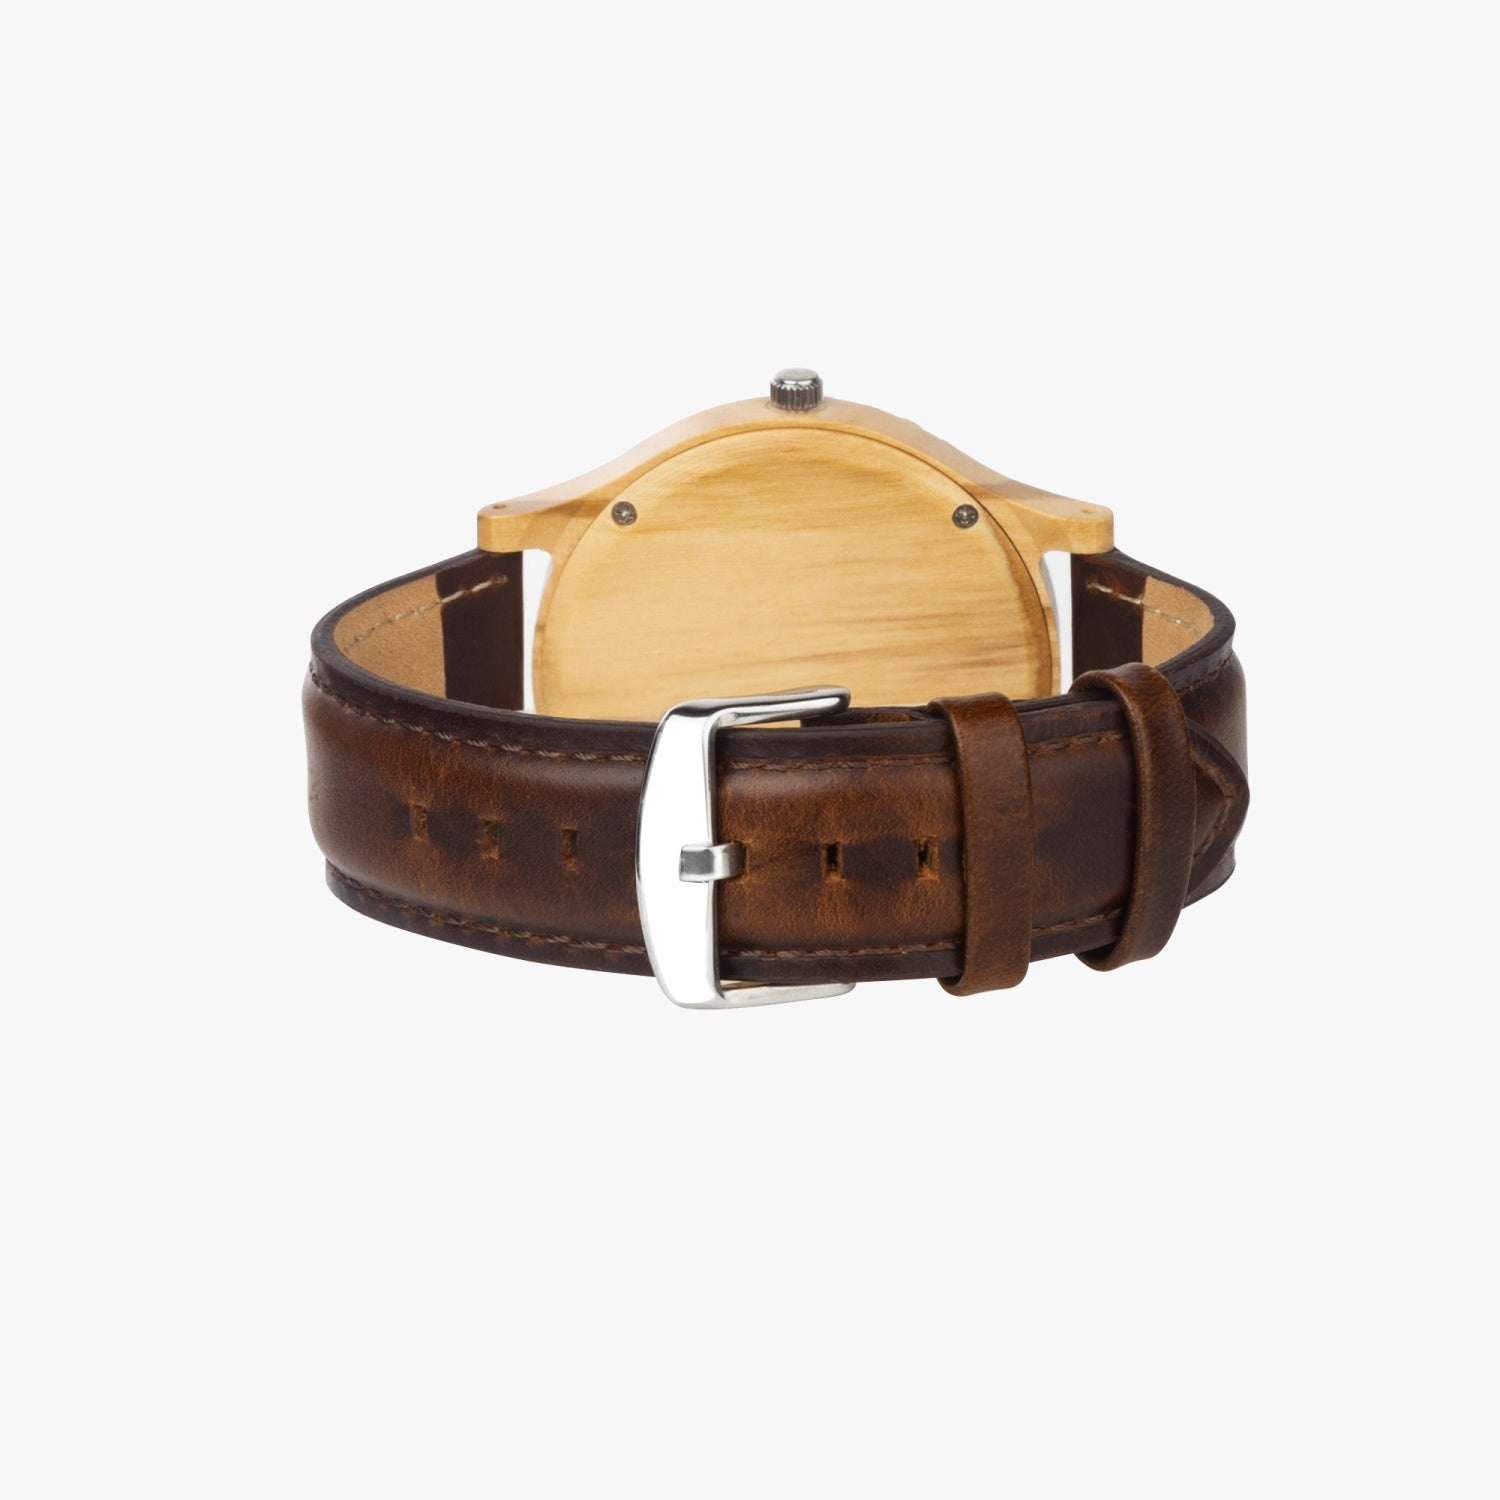 Judaica Personalize Wooden Watch By BenJoy